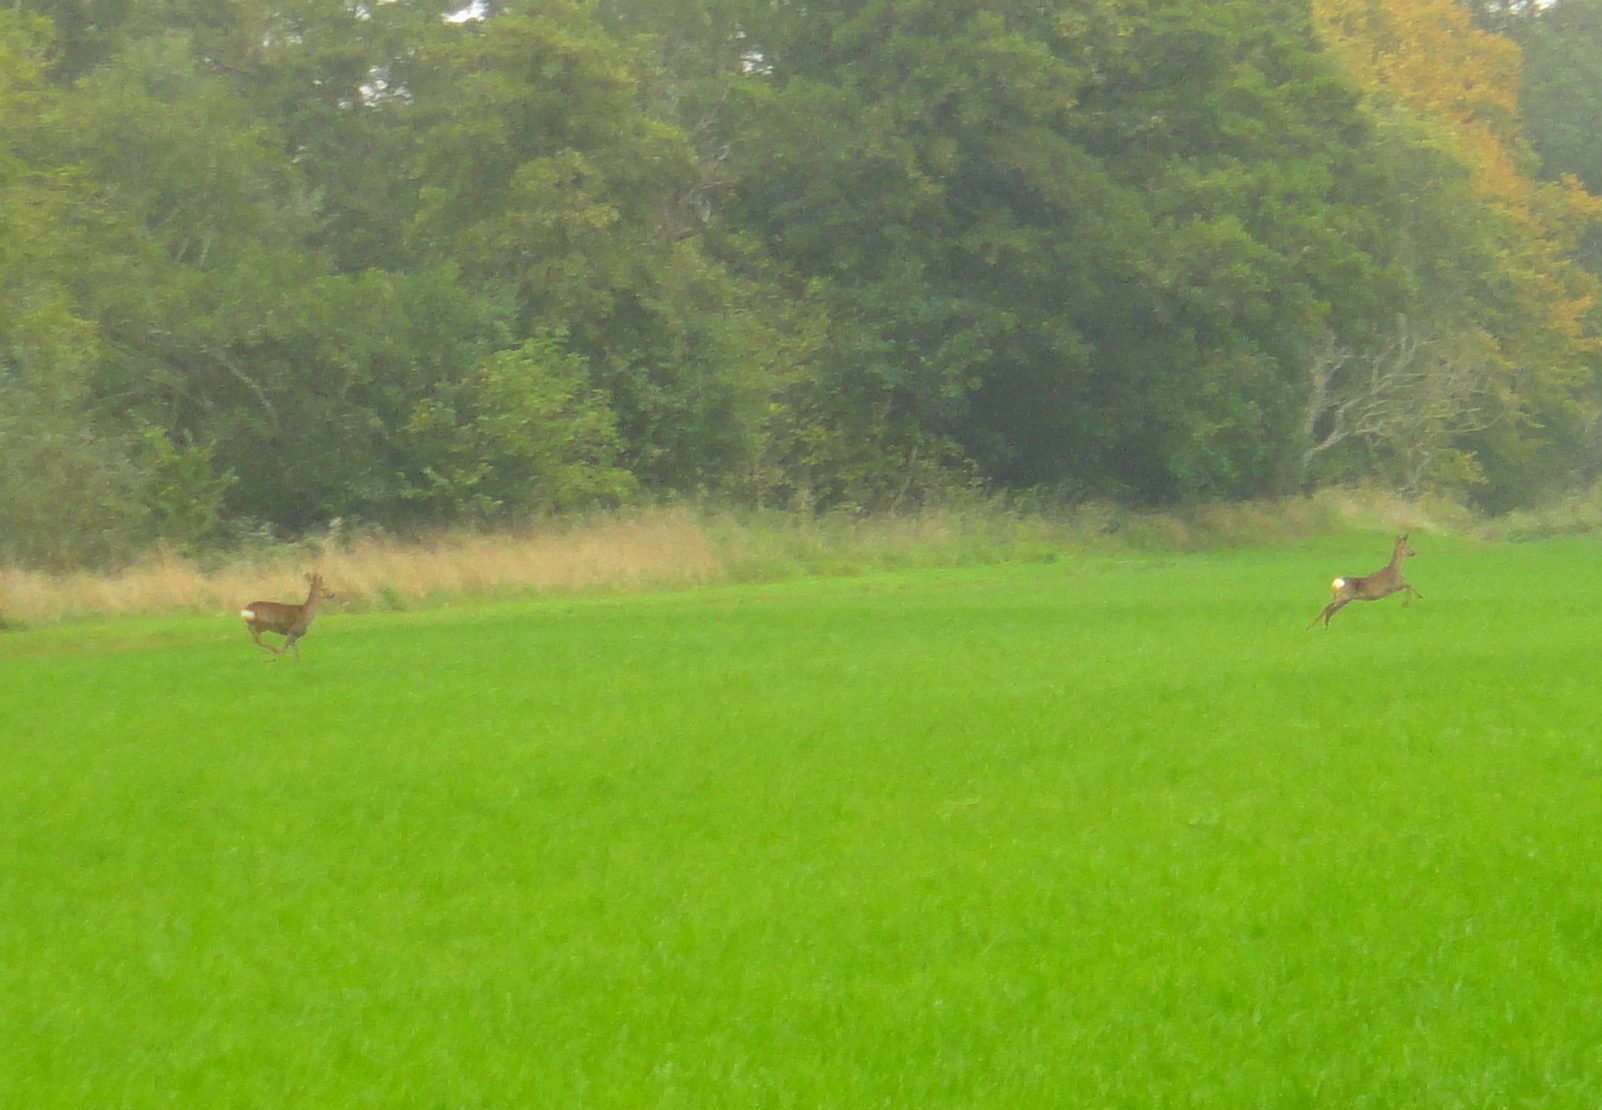 Two deer running across a meadow